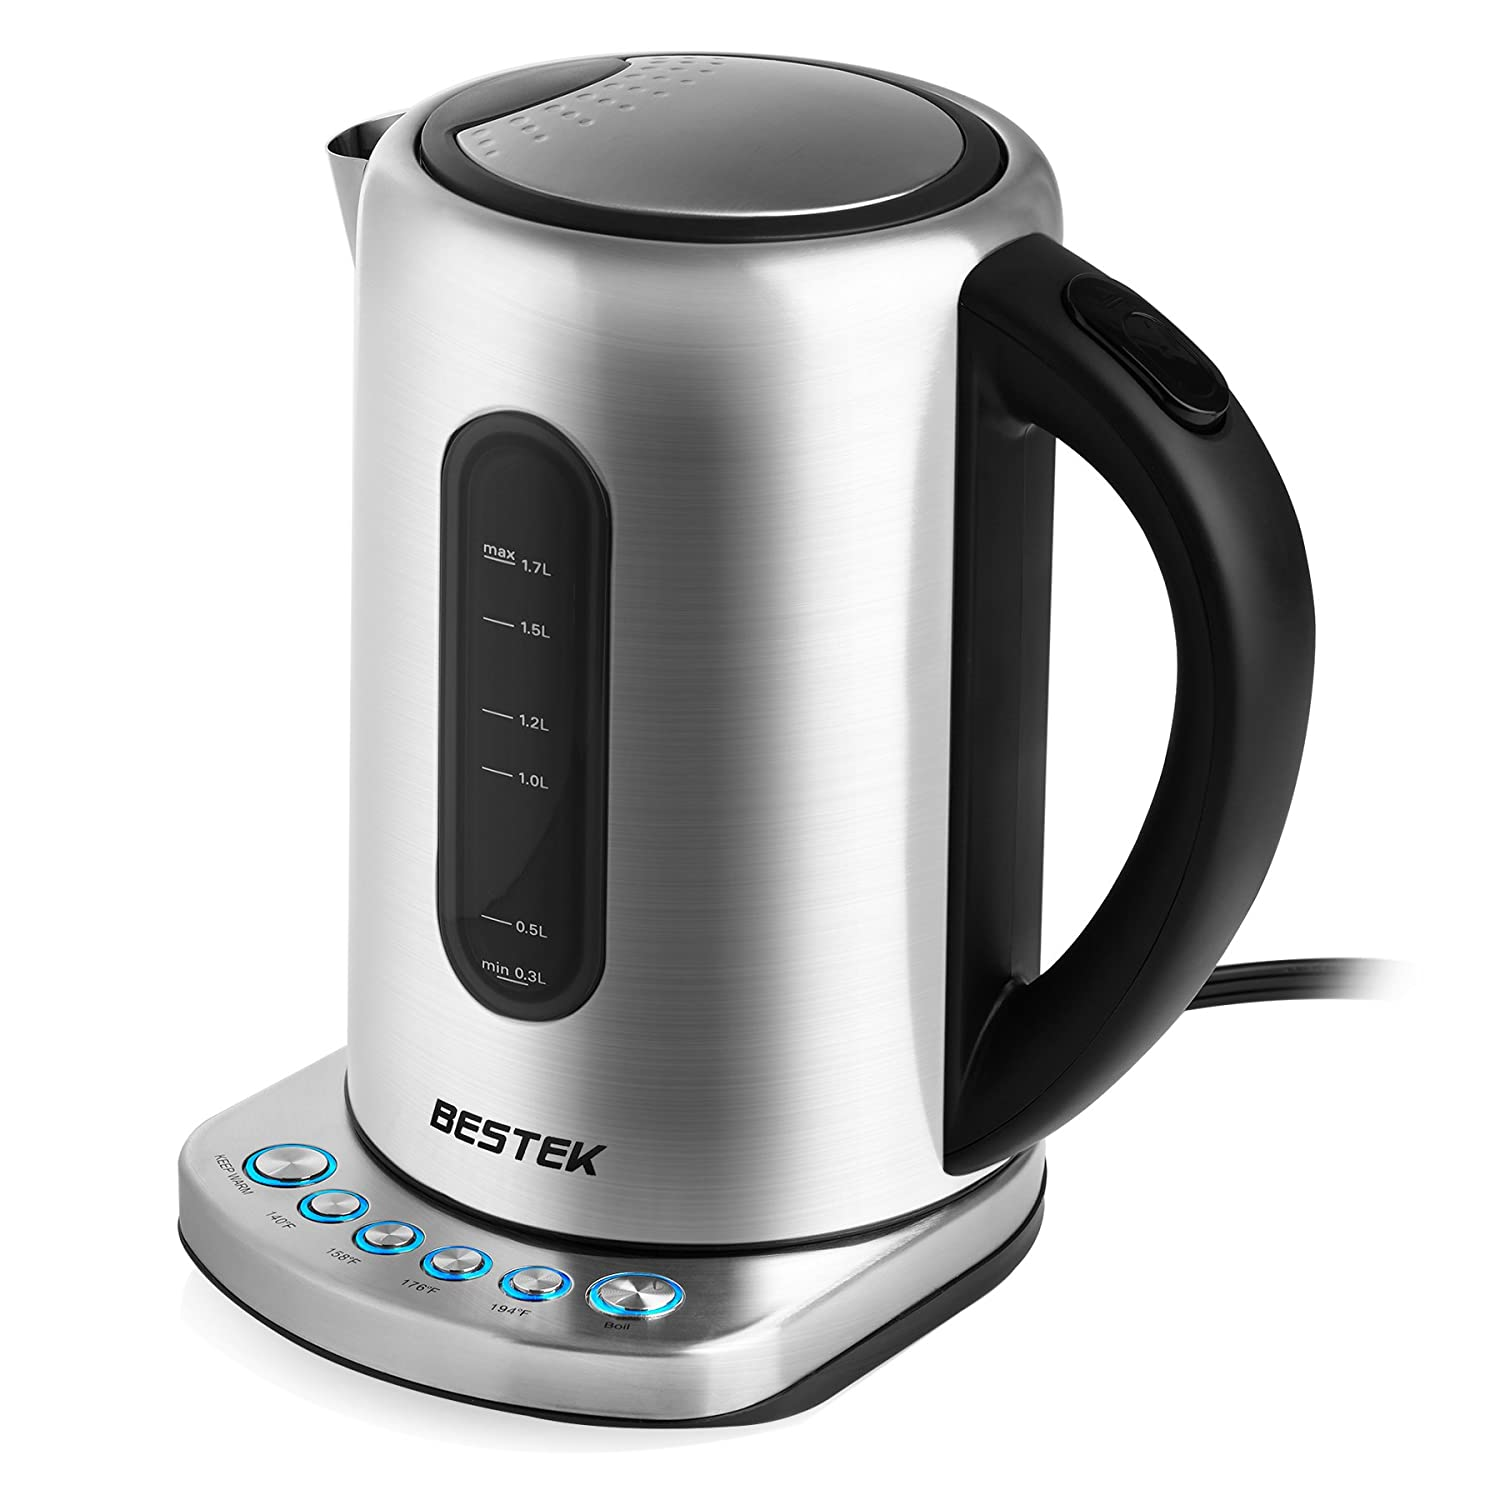 BESTEK Digital Electric Kettle 1.7L Stainless Steel Water Boiler Fast Boiling Tea Kettle with Built-in Precision Temperature Control Panel Base, Auto Shut Off, Boil Dry Protection and Keep Warm